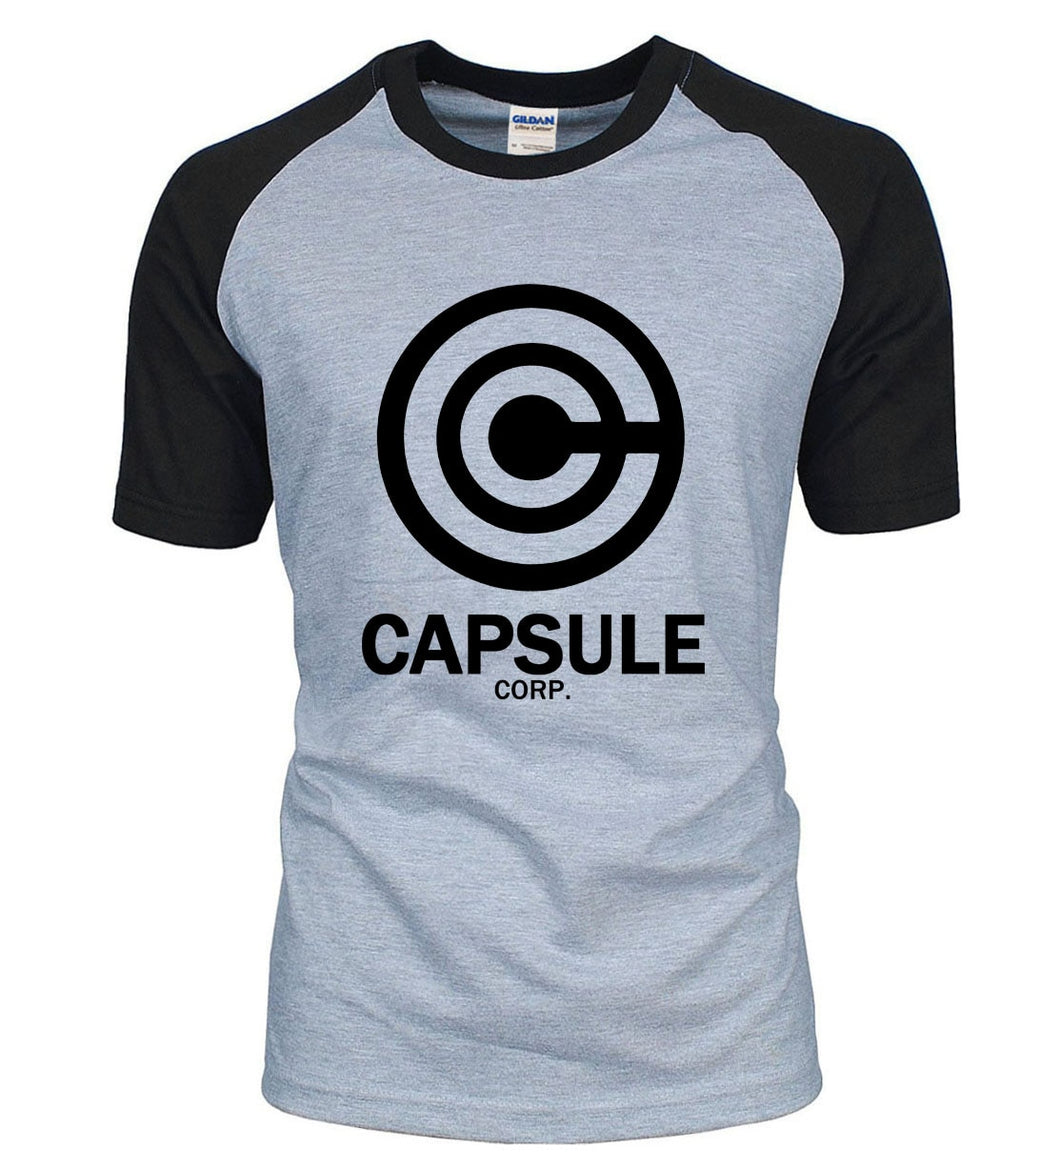 Dragon Ball Z Capsule T-shirt 100% Cotton